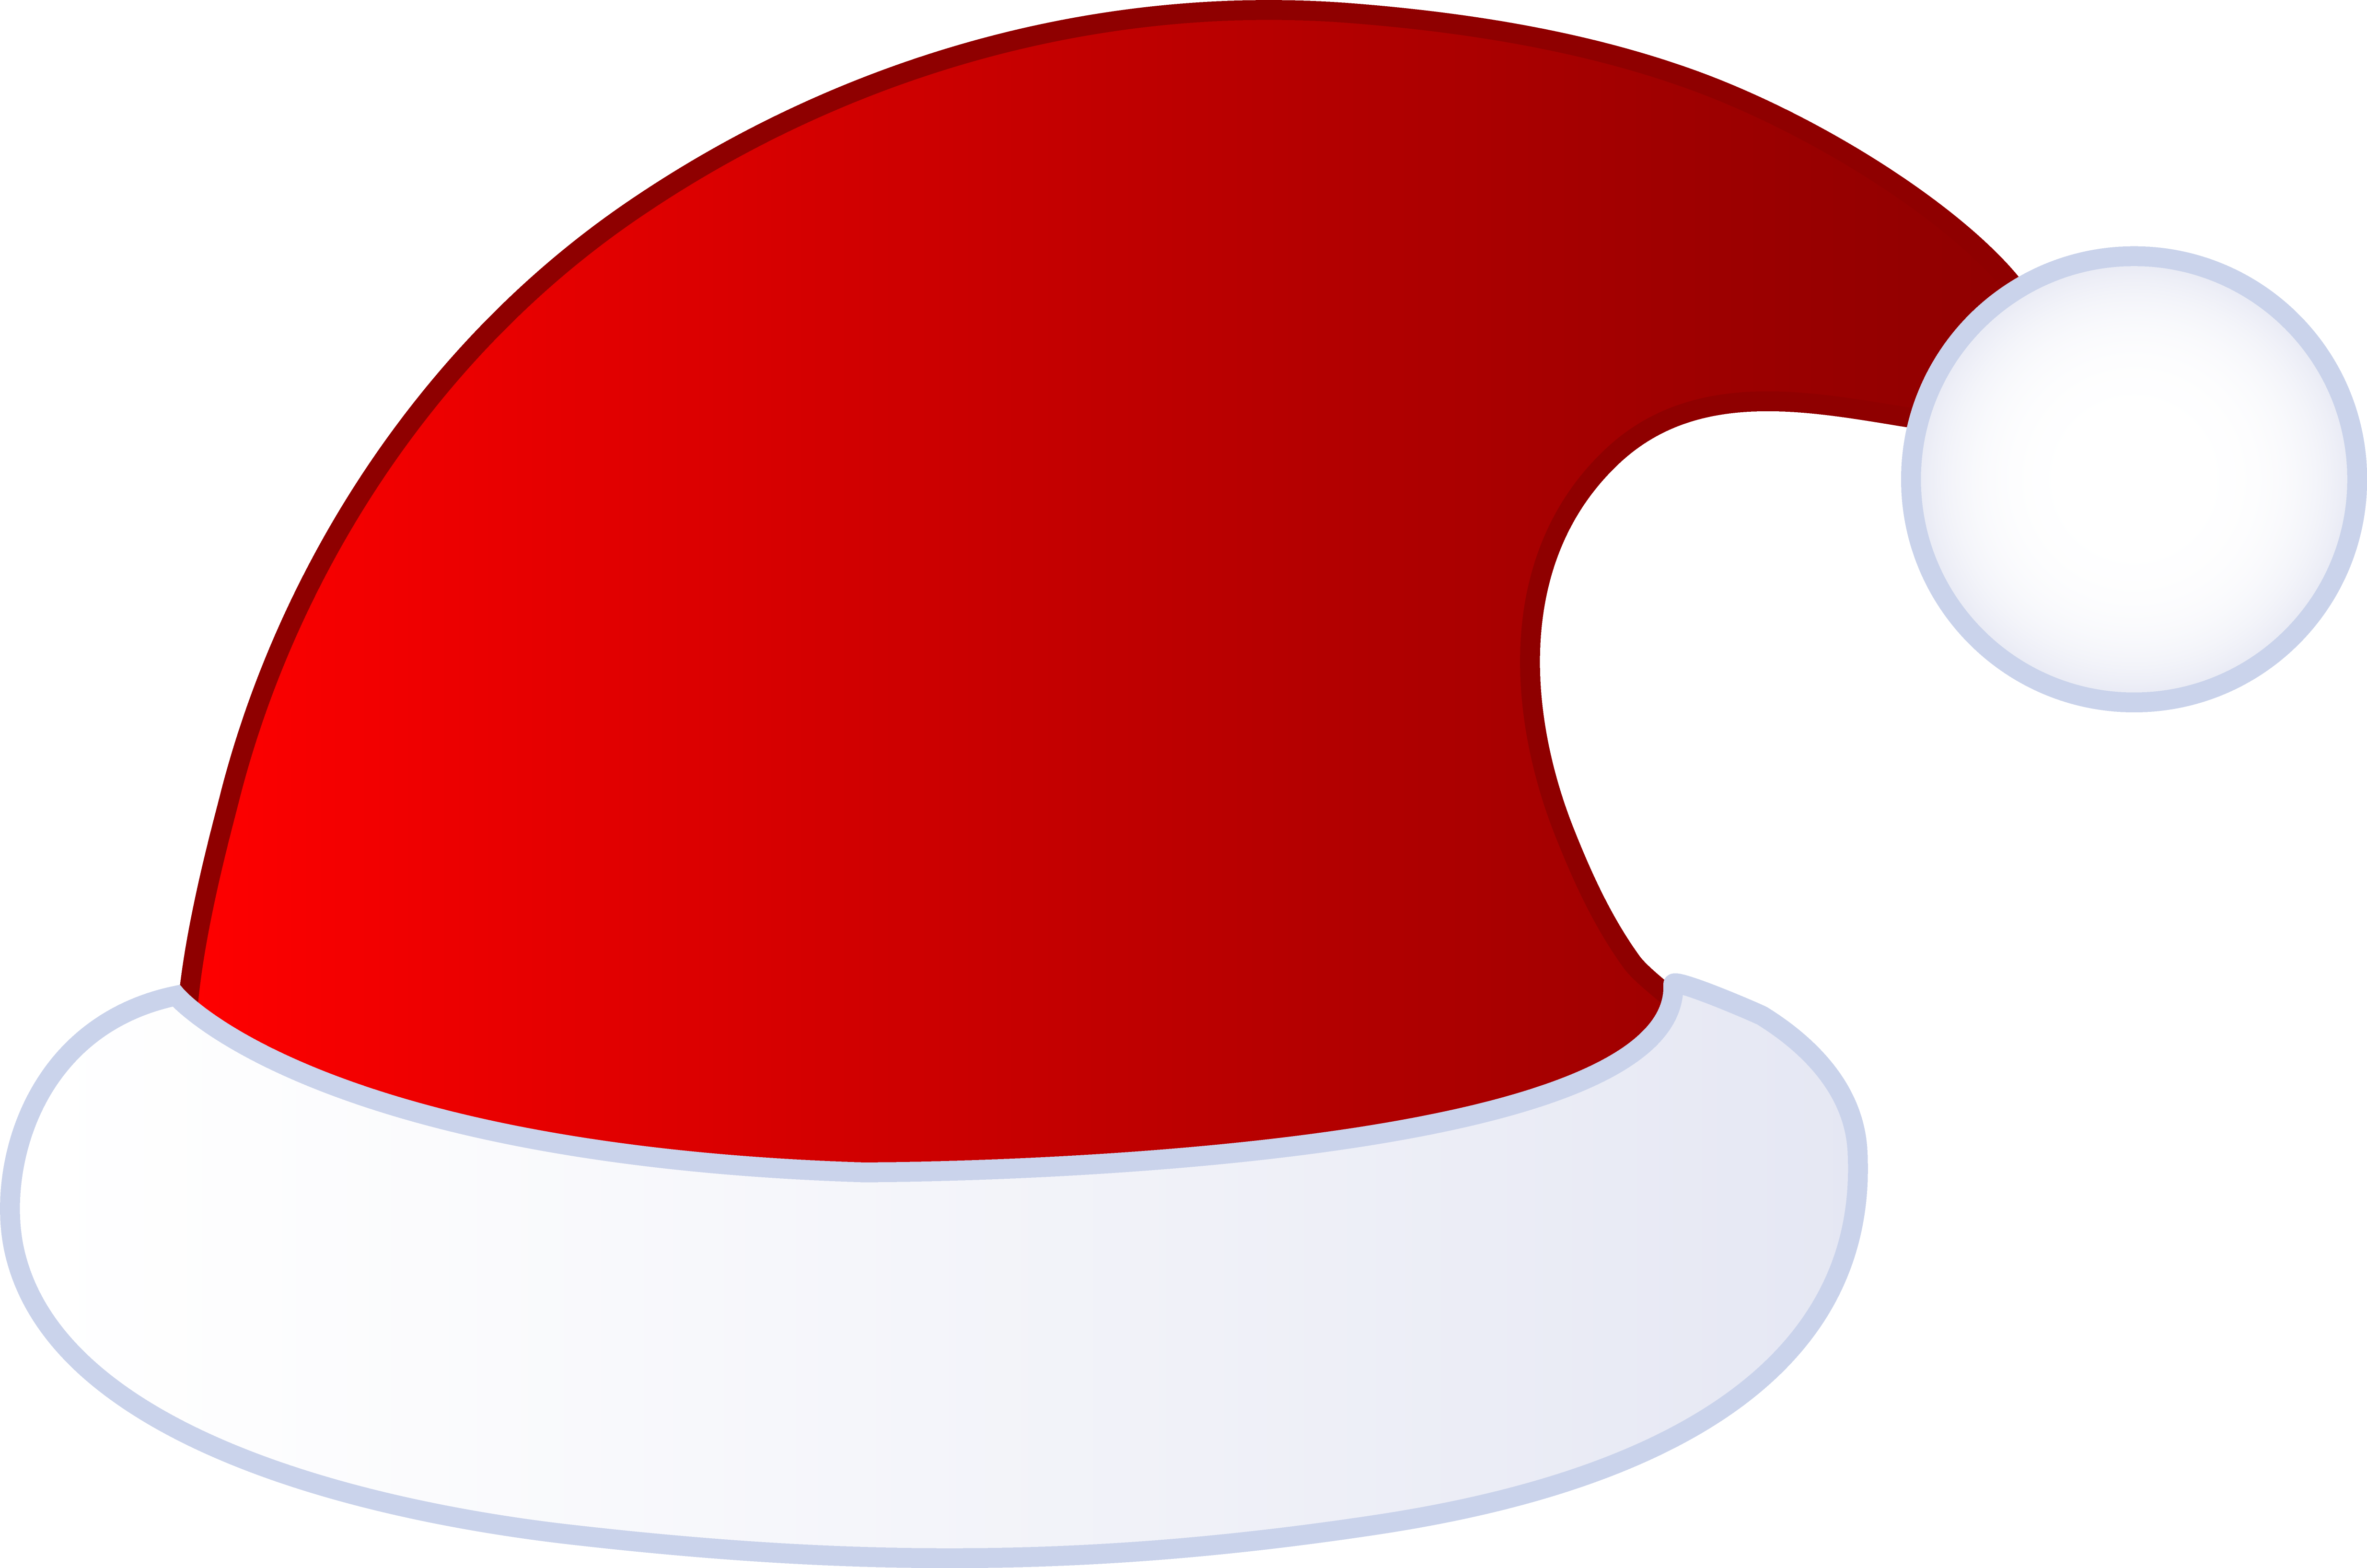 Elephant santa hat public domain clipart graphic freeuse download Free Santa Claus Cap, Download Free Clip Art, Free Clip Art on ... graphic freeuse download